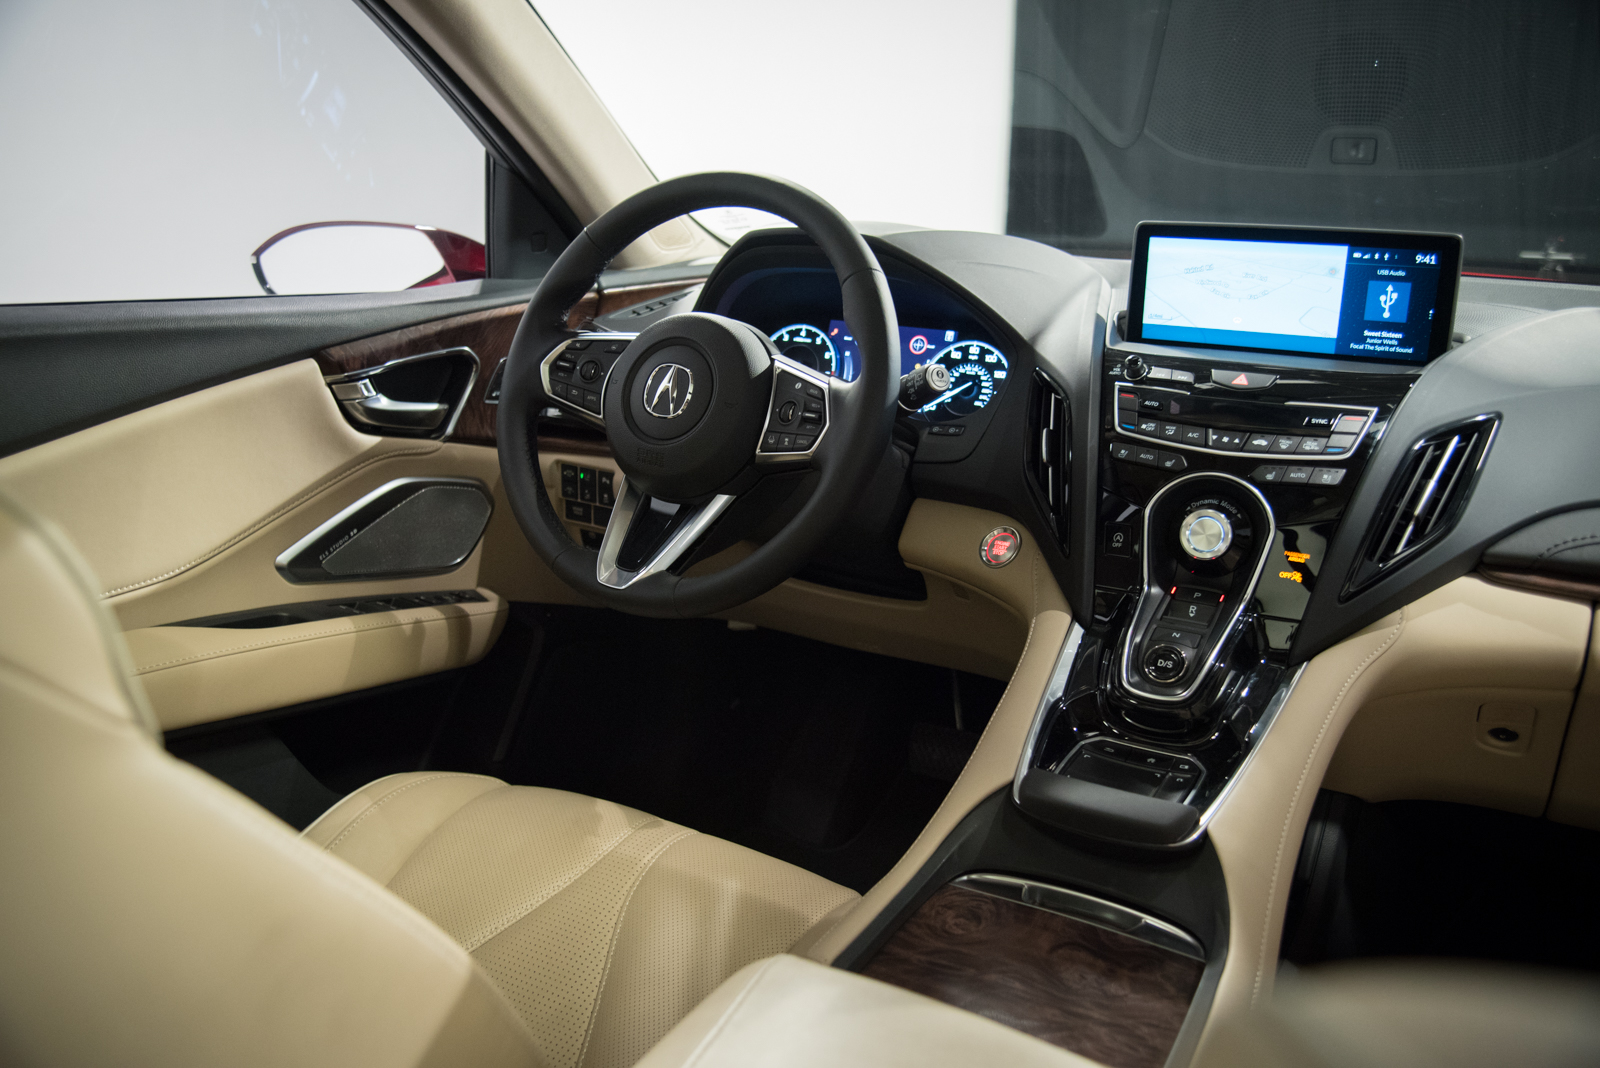 Good ... 2019 Acura RDX Interior 04 ... Images